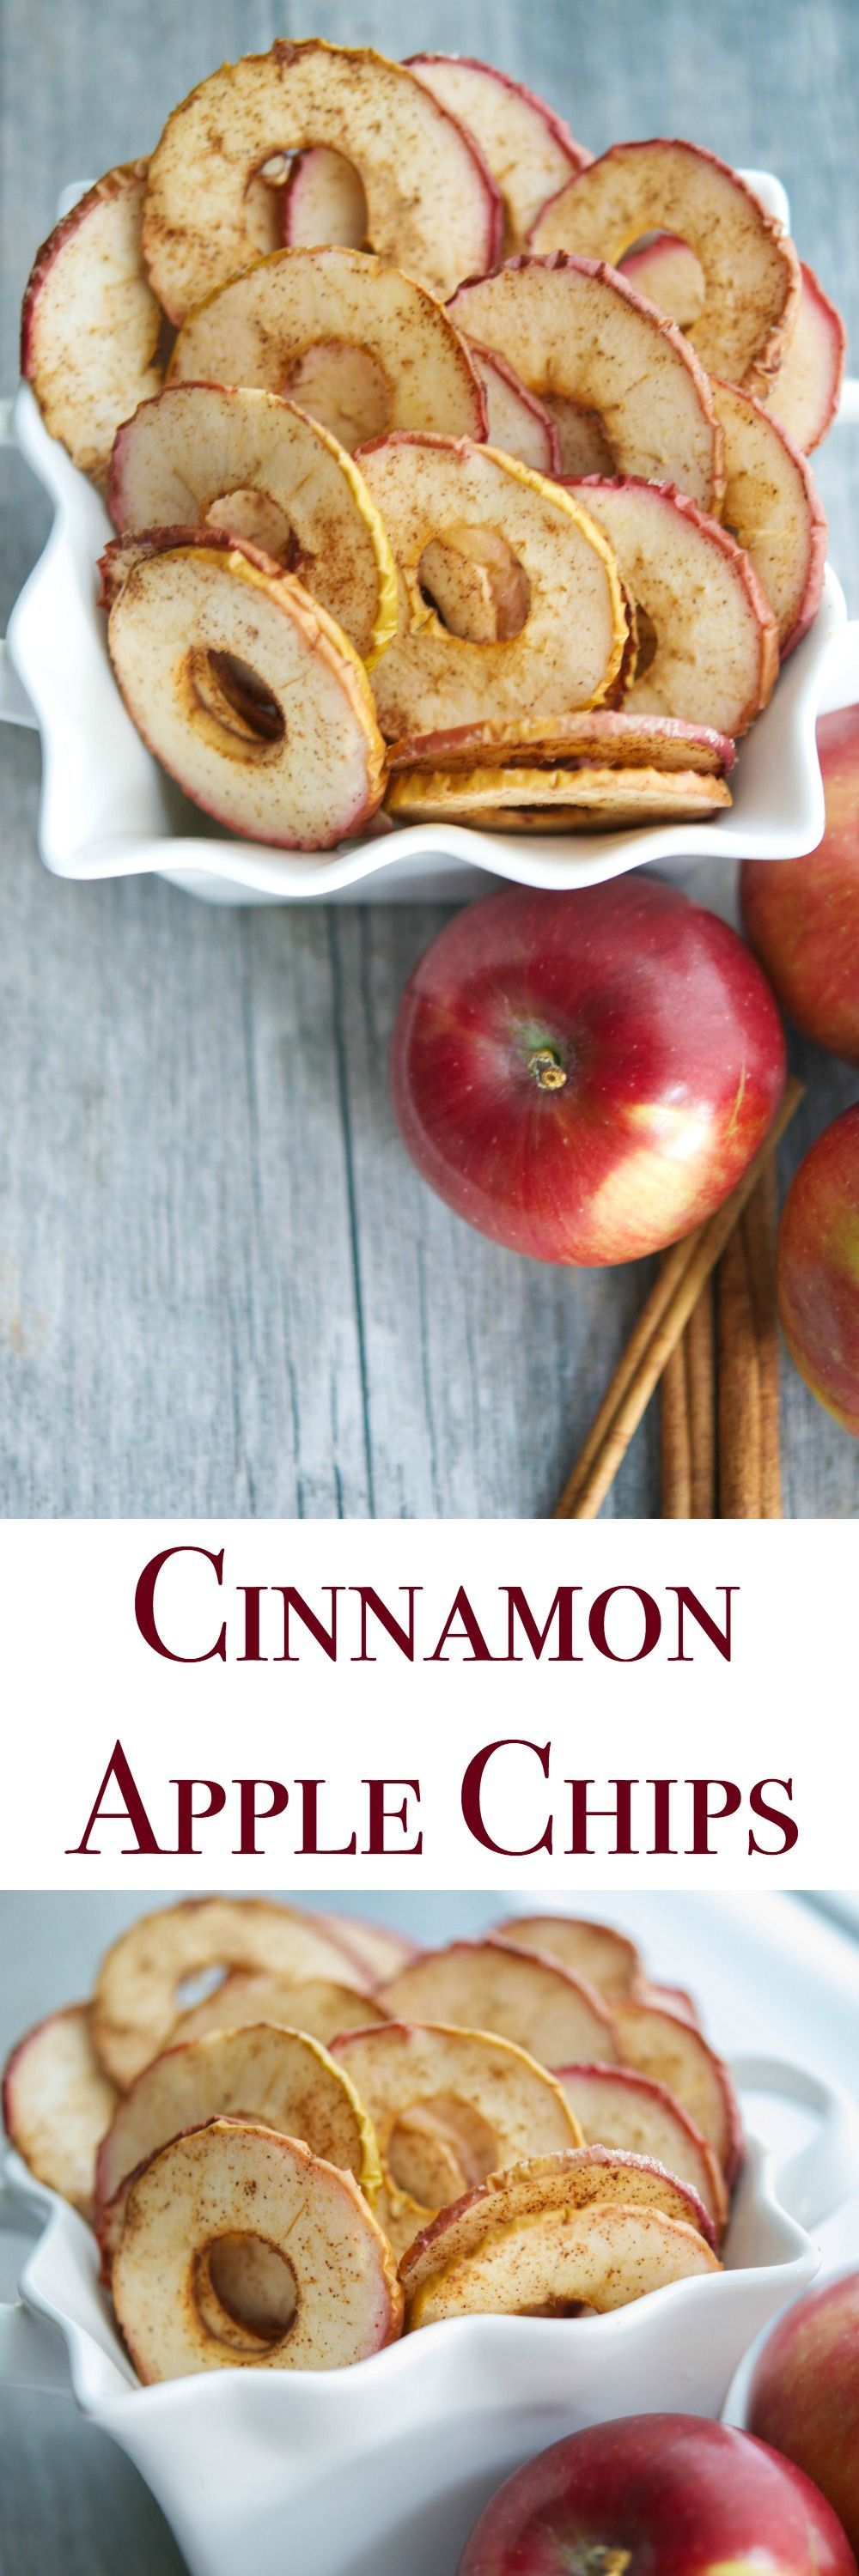 Apple Chips These Cinnamon Apple Chips, made with a few simple ingredients, are a healthy snack your whole family will love.These Cinnamon Apple Chips, made with a few simple ingredients, are a healthy snack your whole family will love.